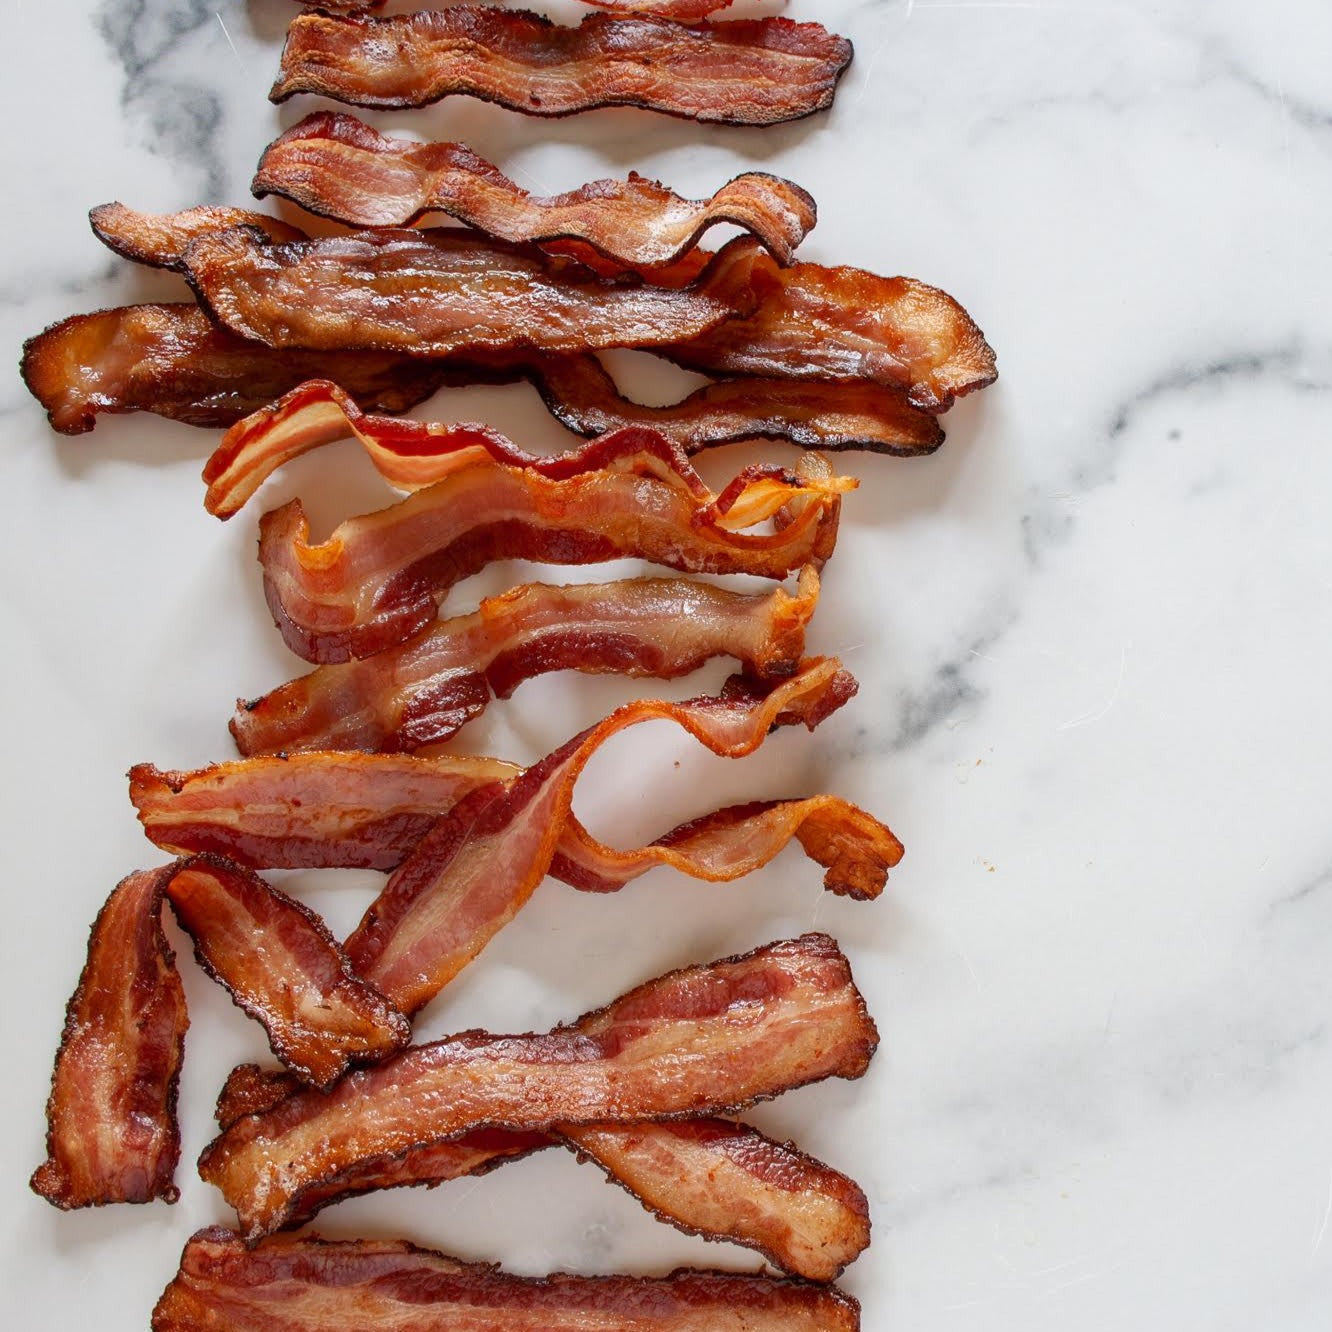 Bacon Subscription - 6 Months